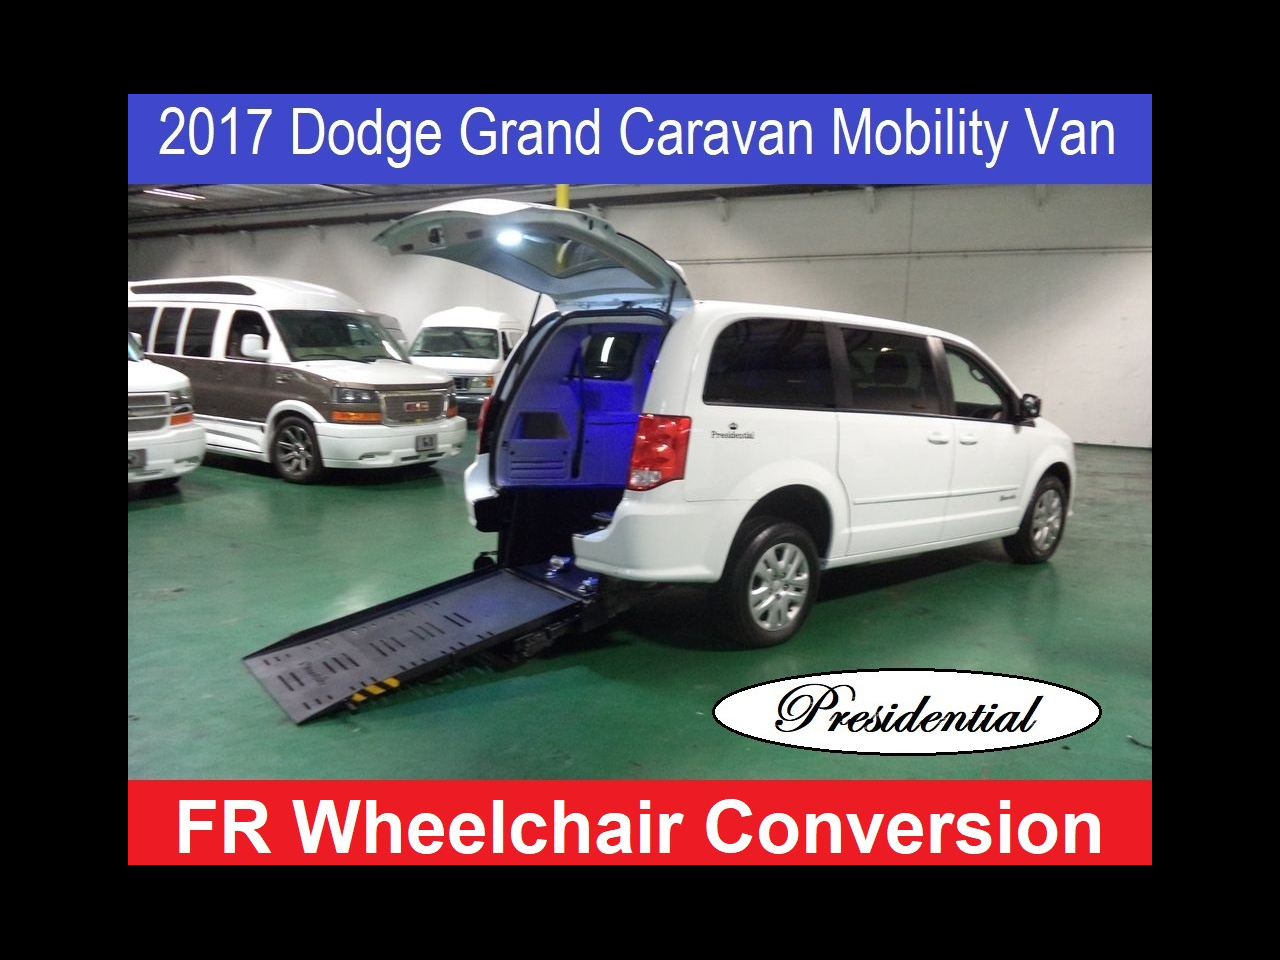 2017 Dodge Grand Caravan Presidential FR Wheelchair Mobility Conversion Van